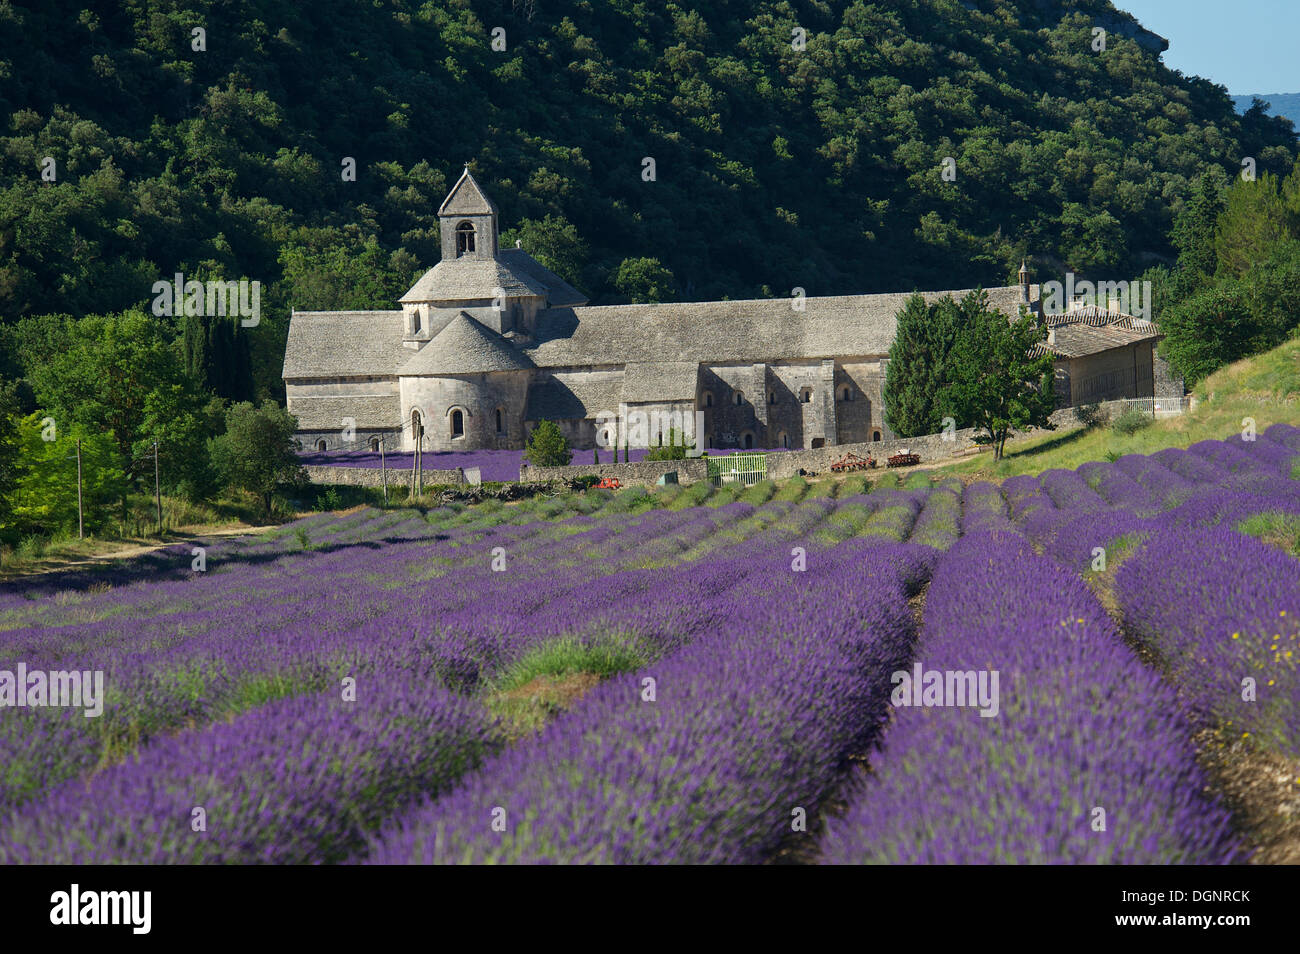 Cistercian abbey, Abbaye de Sénanque with a lavender field, Vaucluse, Provence, Region Provence-Alpes-Côte d'Azur, Stock Photo